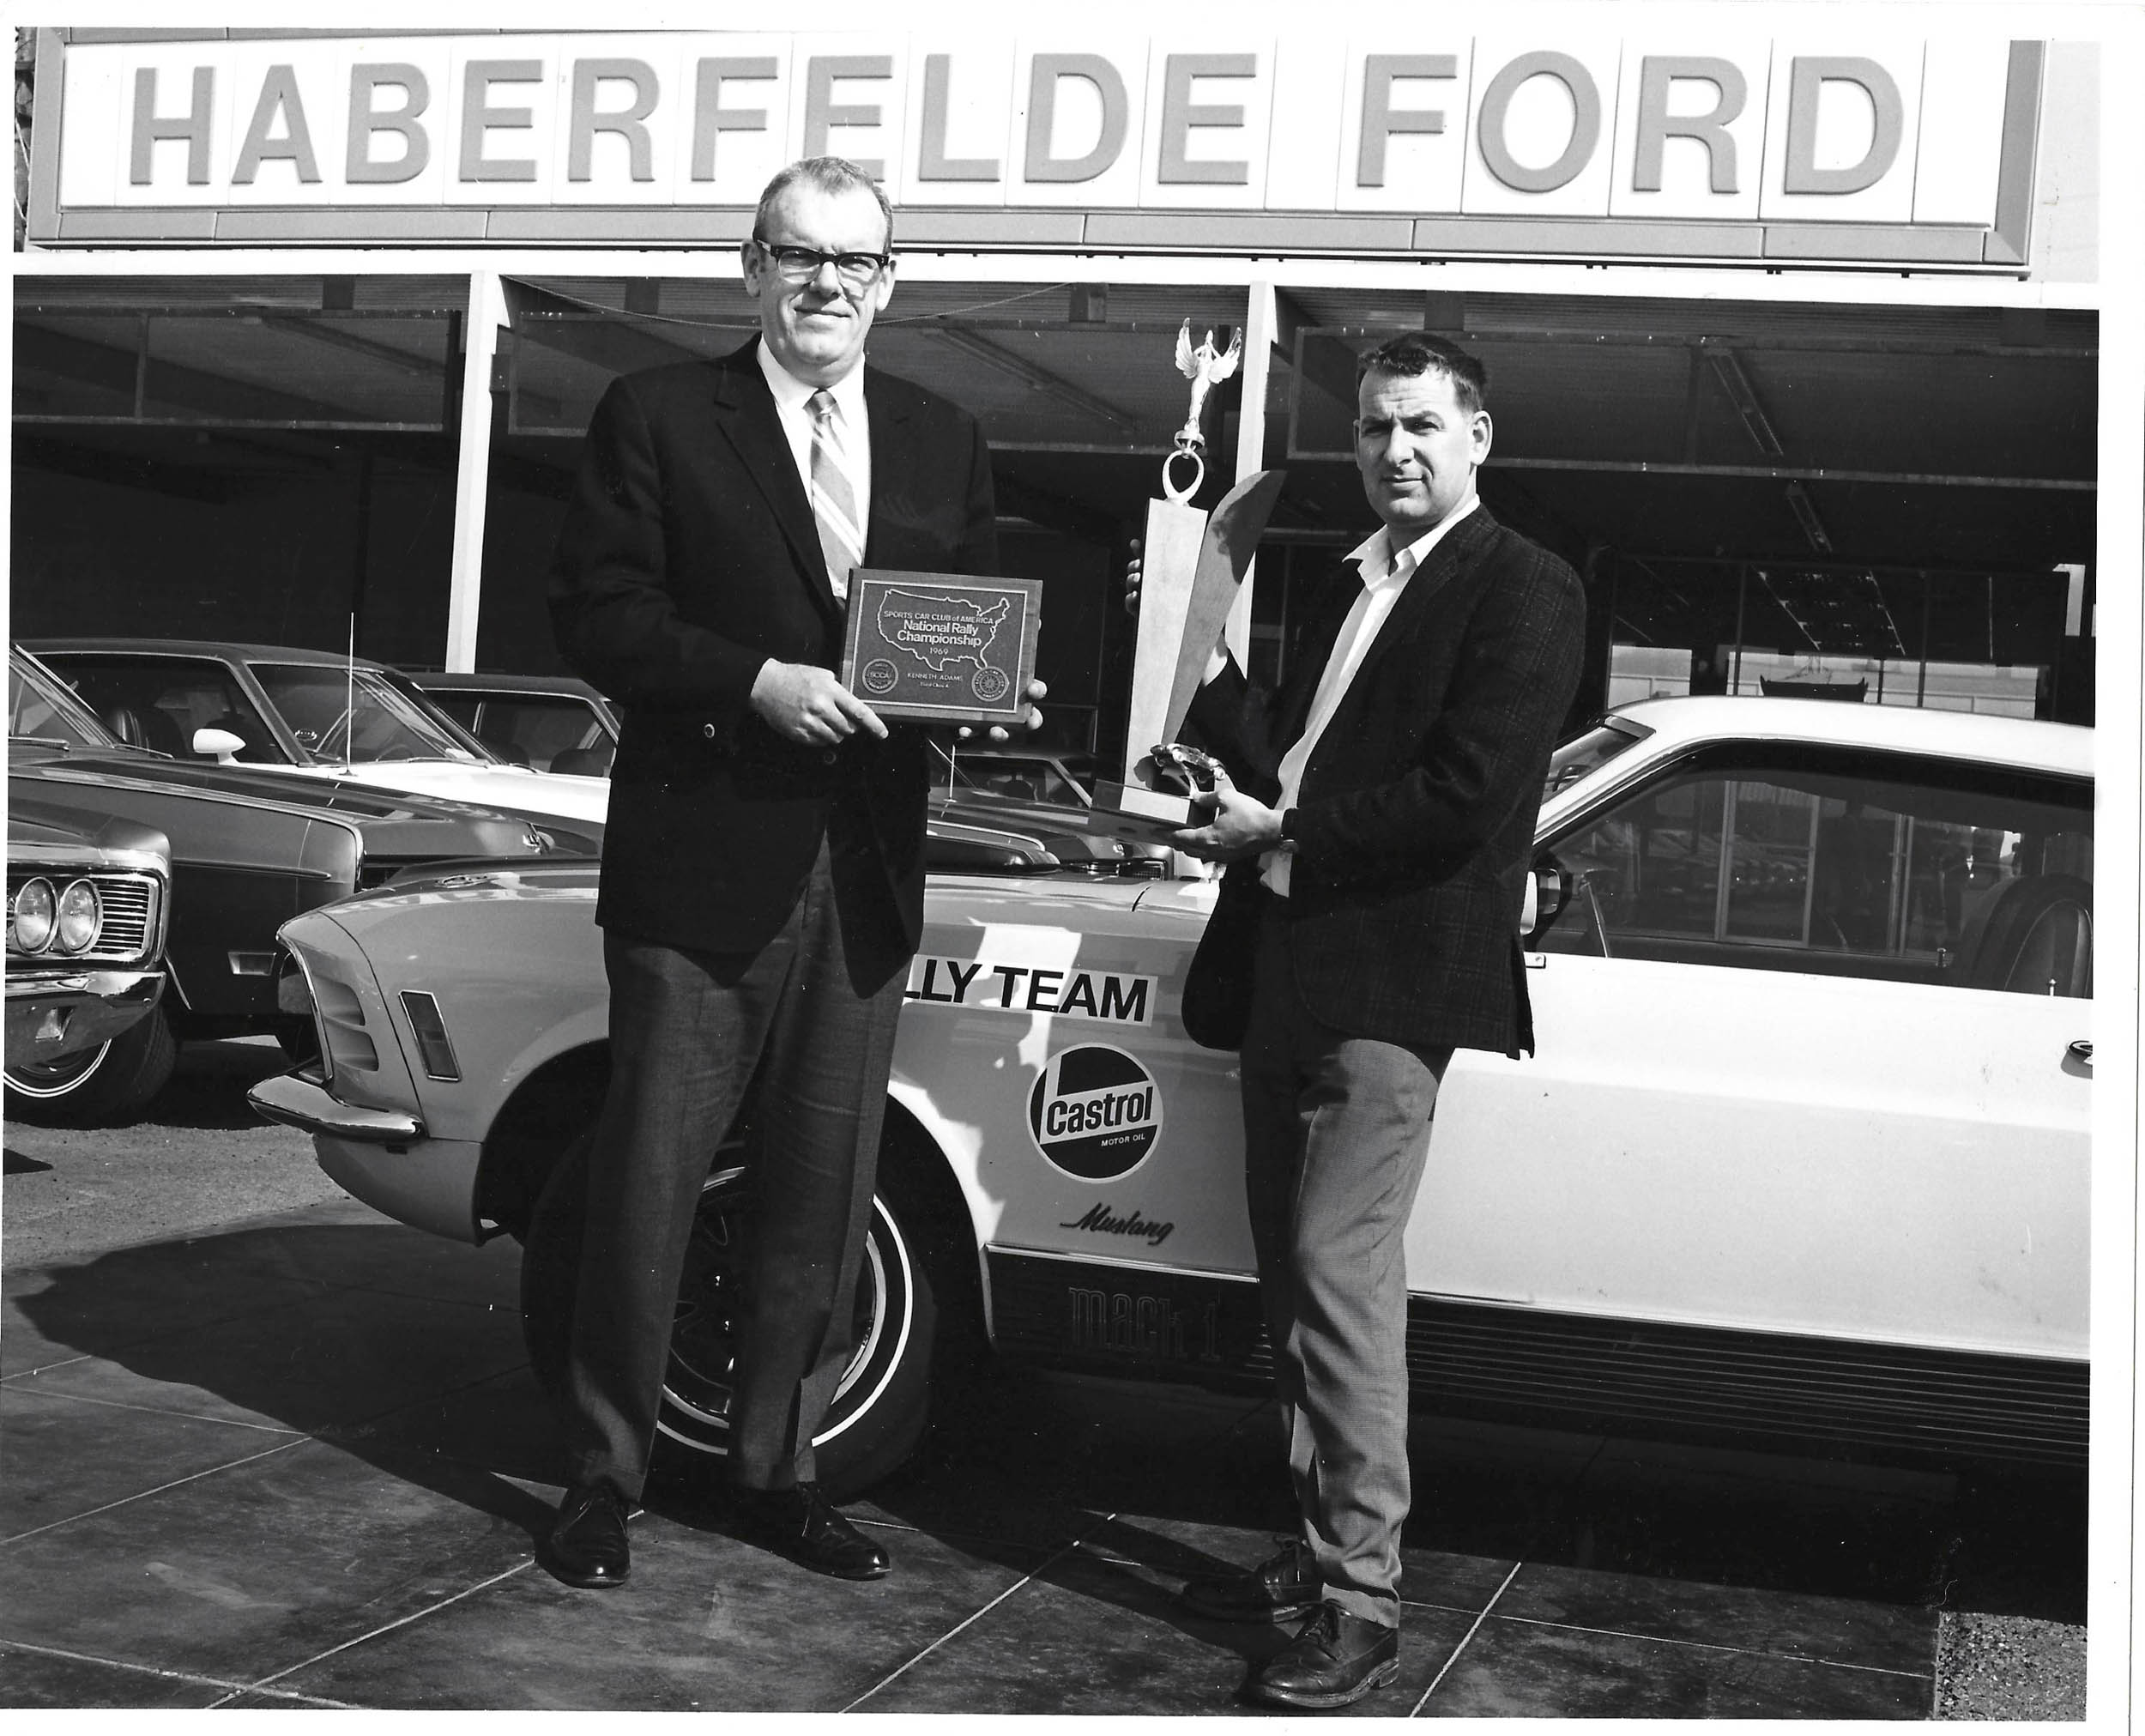 Jim Burke of Haberfelde Ford in Bakersfield, CA (now Burke Ford) presents Ken Adams with trophy for being part of Ford's winning the 1970 SCCA Manufacturer's Road Rally Championship.